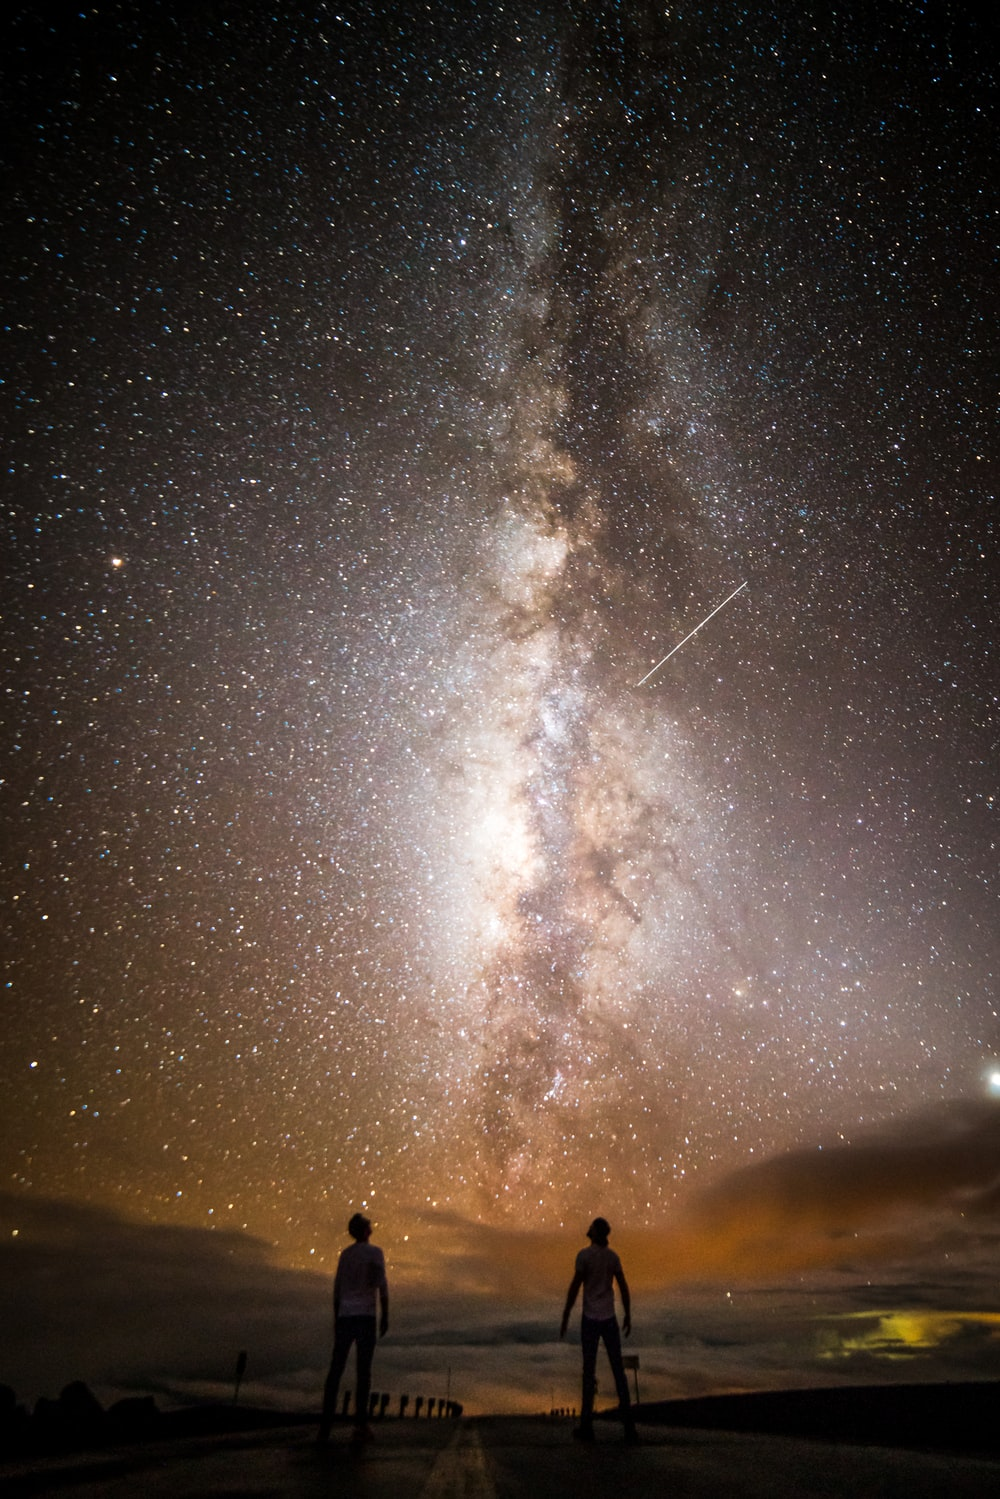 two people standing under milky way at night